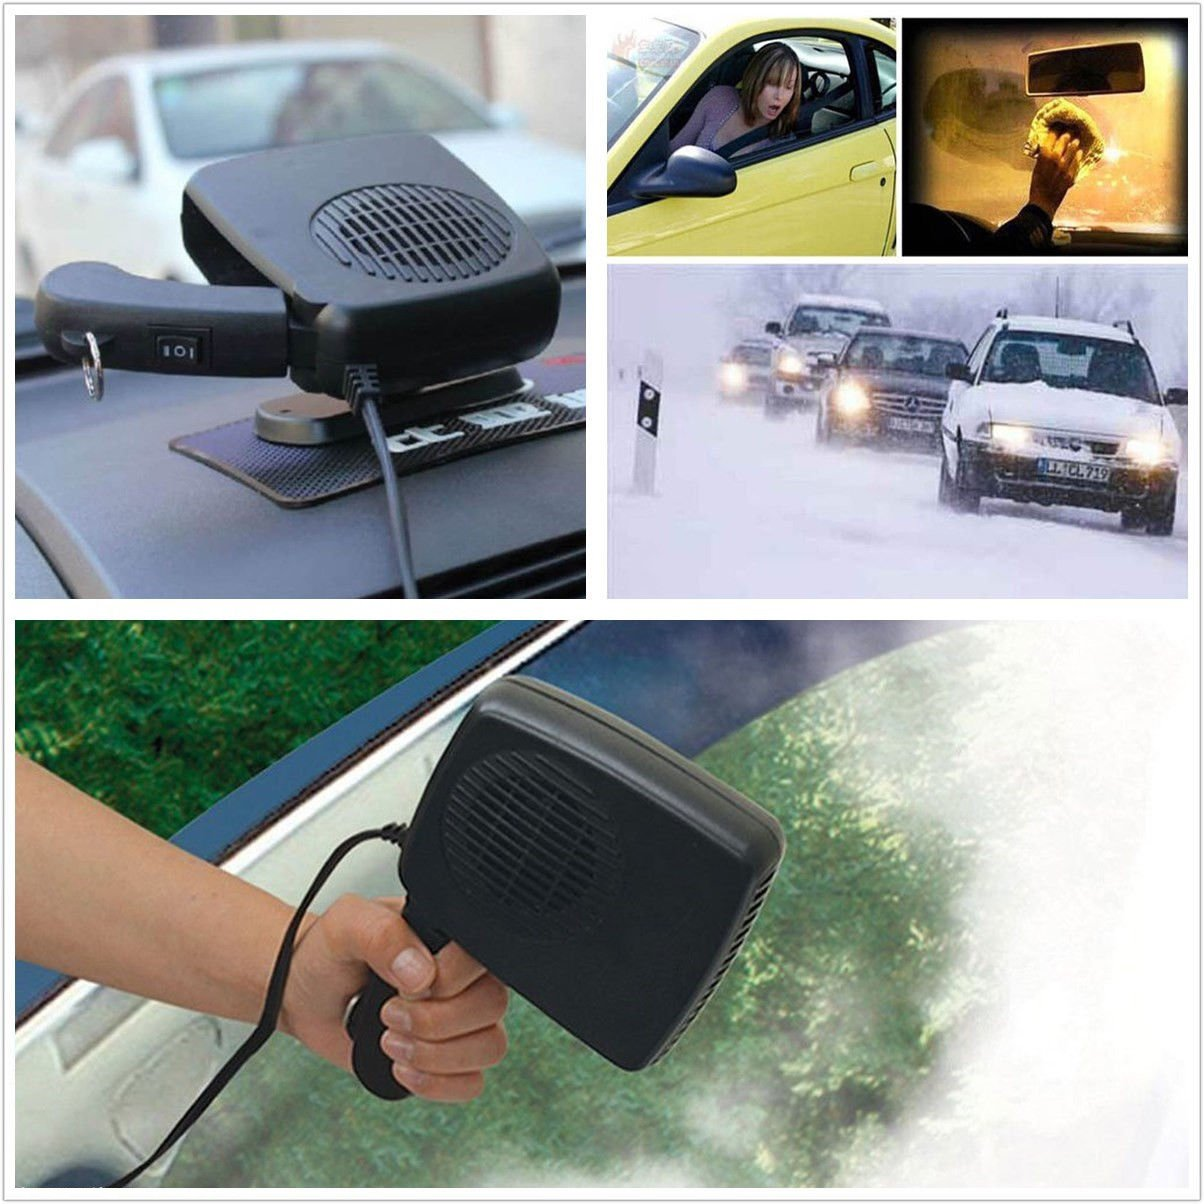 12V 150-300W 2in1 Car Portable Ceramic Heating Cooling Ceramic Dry Heater Fan Defroster Demister CISUNG